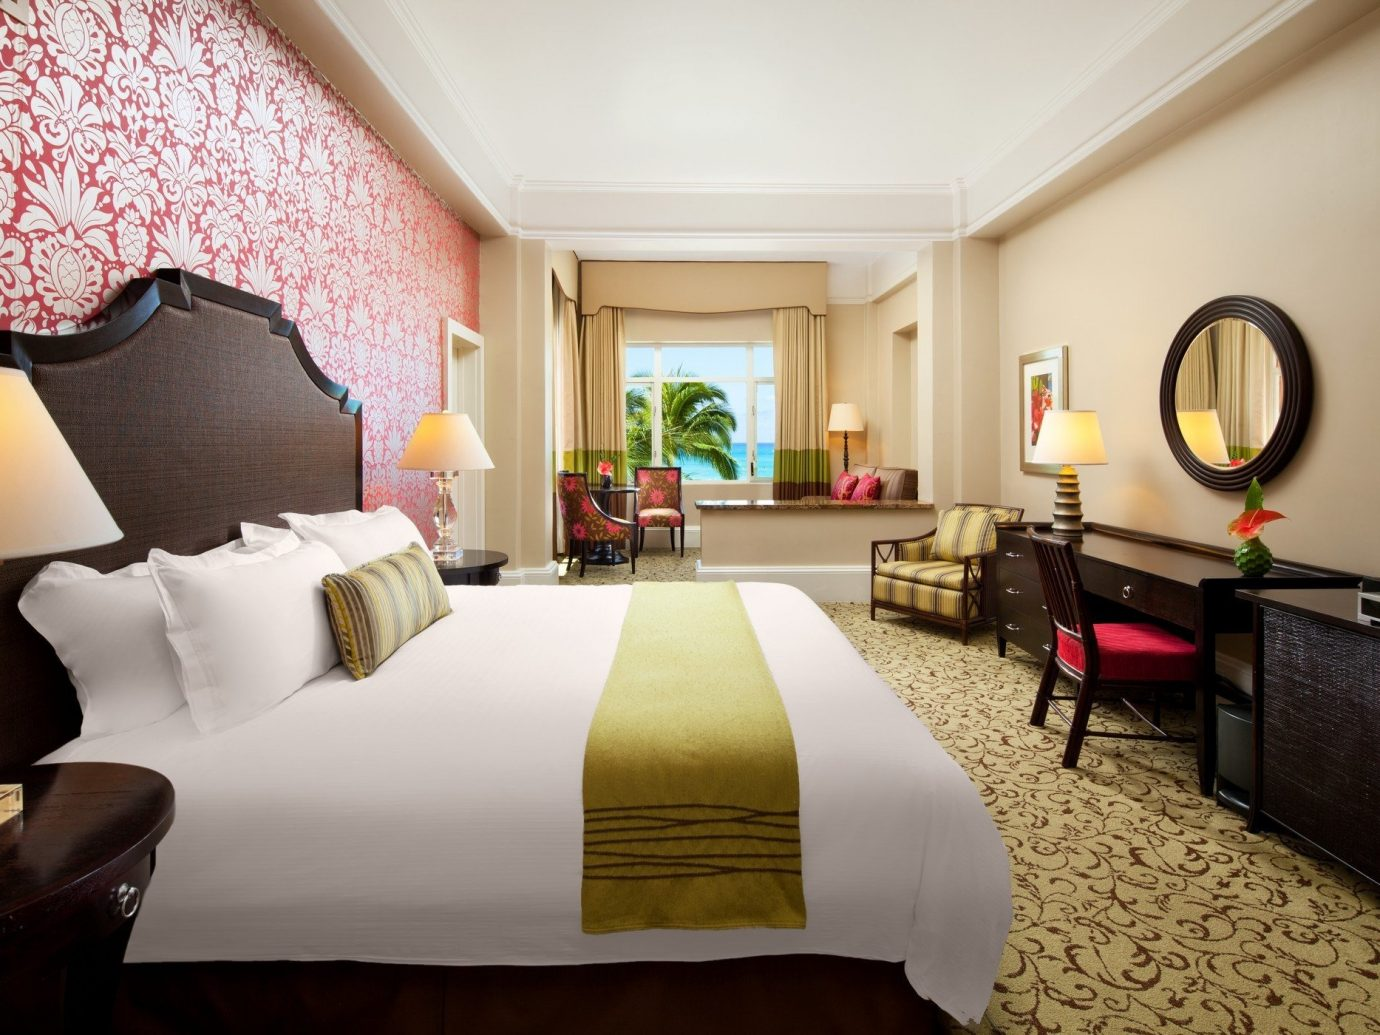 Boutique Hotels Hawaii Honolulu Hotels indoor wall sofa room floor Living hotel Suite interior design ceiling furniture Bedroom decorated nice interior designer flat area lamp several